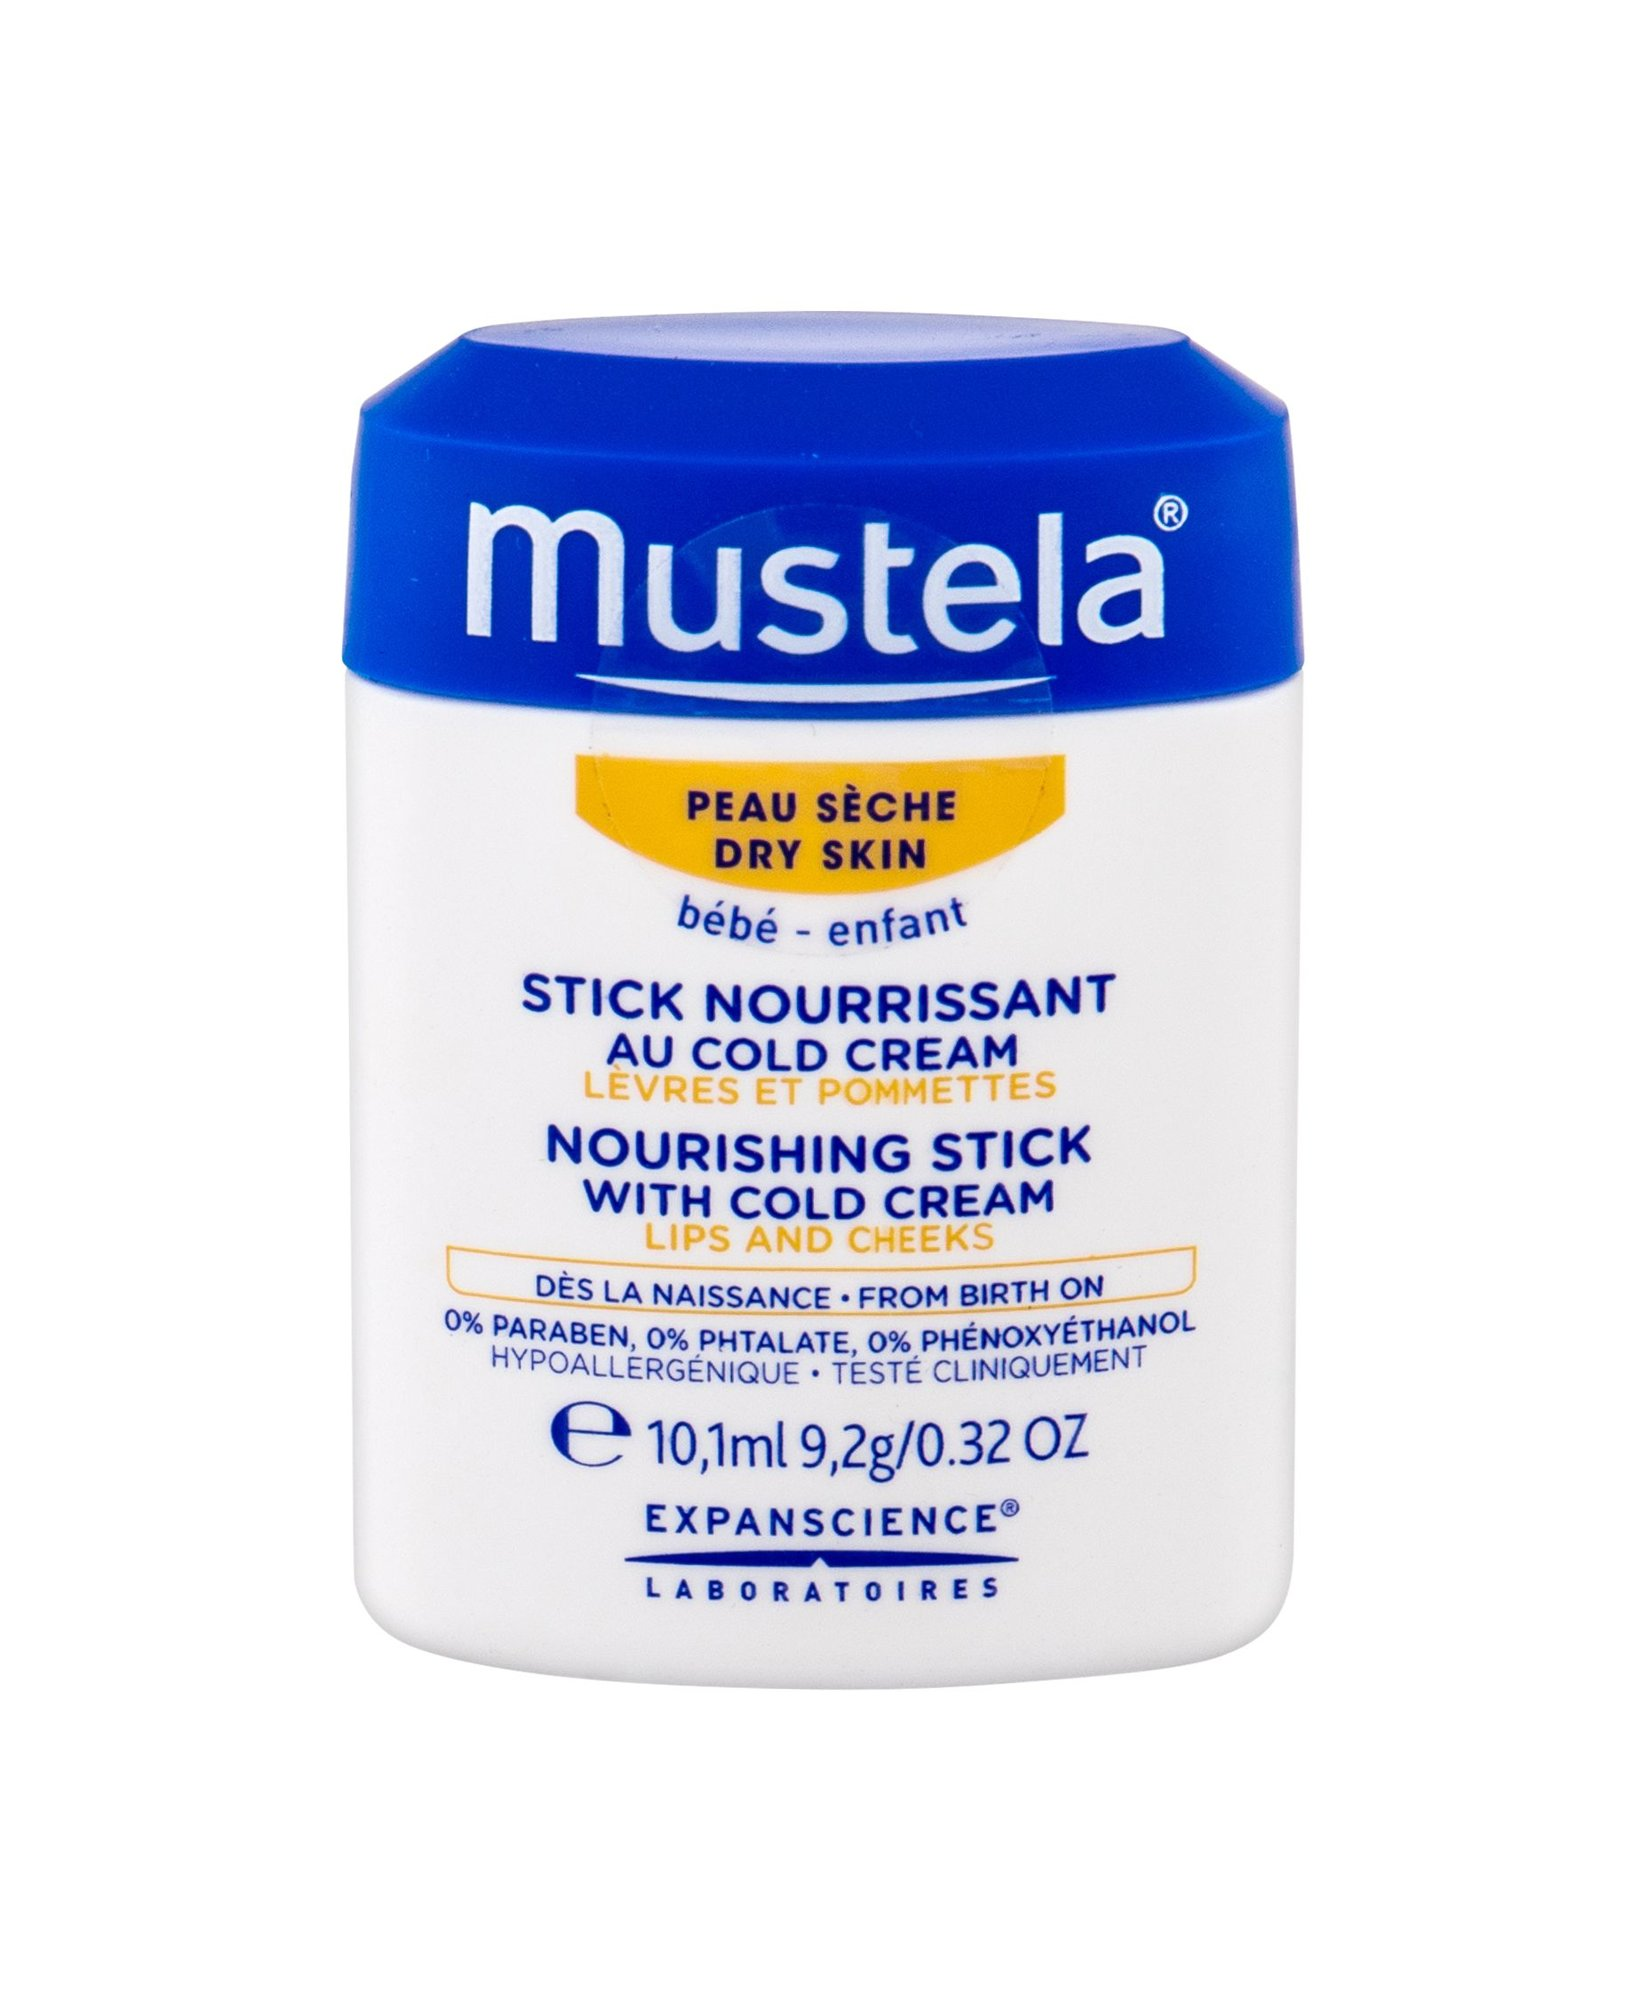 Mustela Bébé Day Cream 10,1ml  Nourishing Stick With Cold Cream